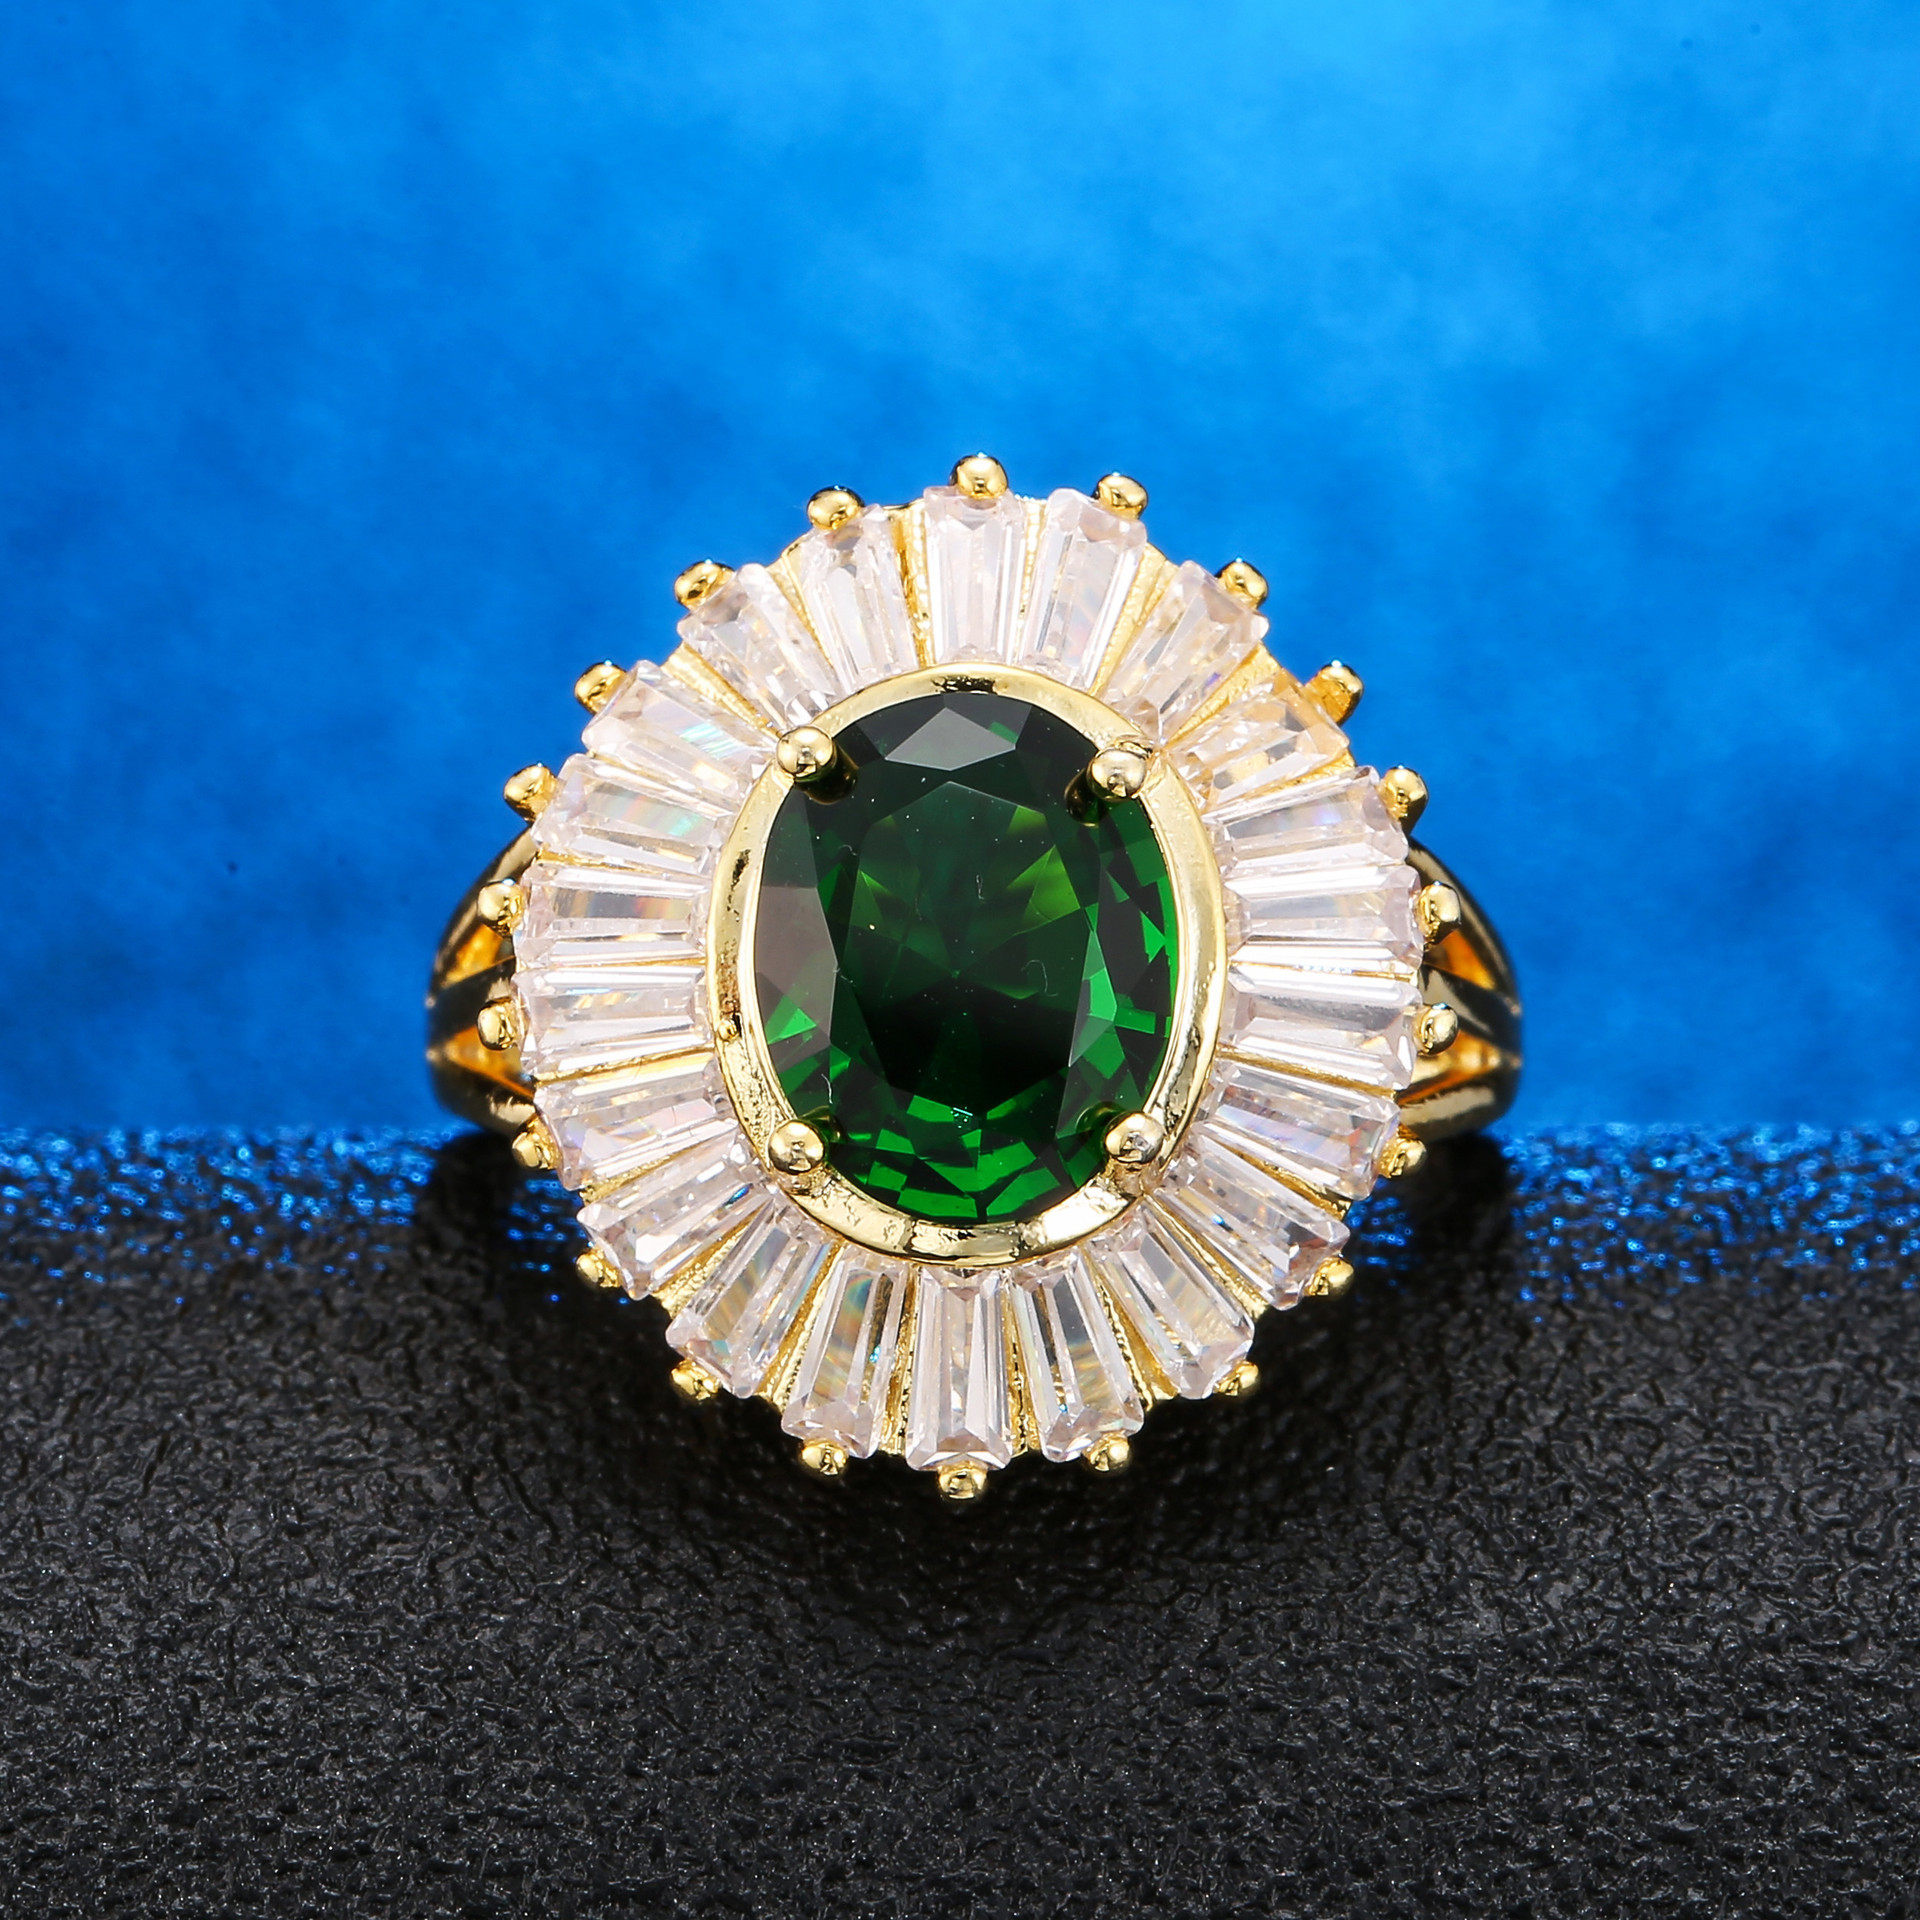 14K Gold Emerald Green Diamond Ring Creative Anillos De Jewelry Bague or Jaune Bizuteria for Women Diamante Ring 6 7 8 9 10 201914K Gold Emerald Green Diamond Ring Creative Anillos De Jewelry Bague or Jaune Bizuteria for Women Diamante Ring 6 7 8 9 10 2019